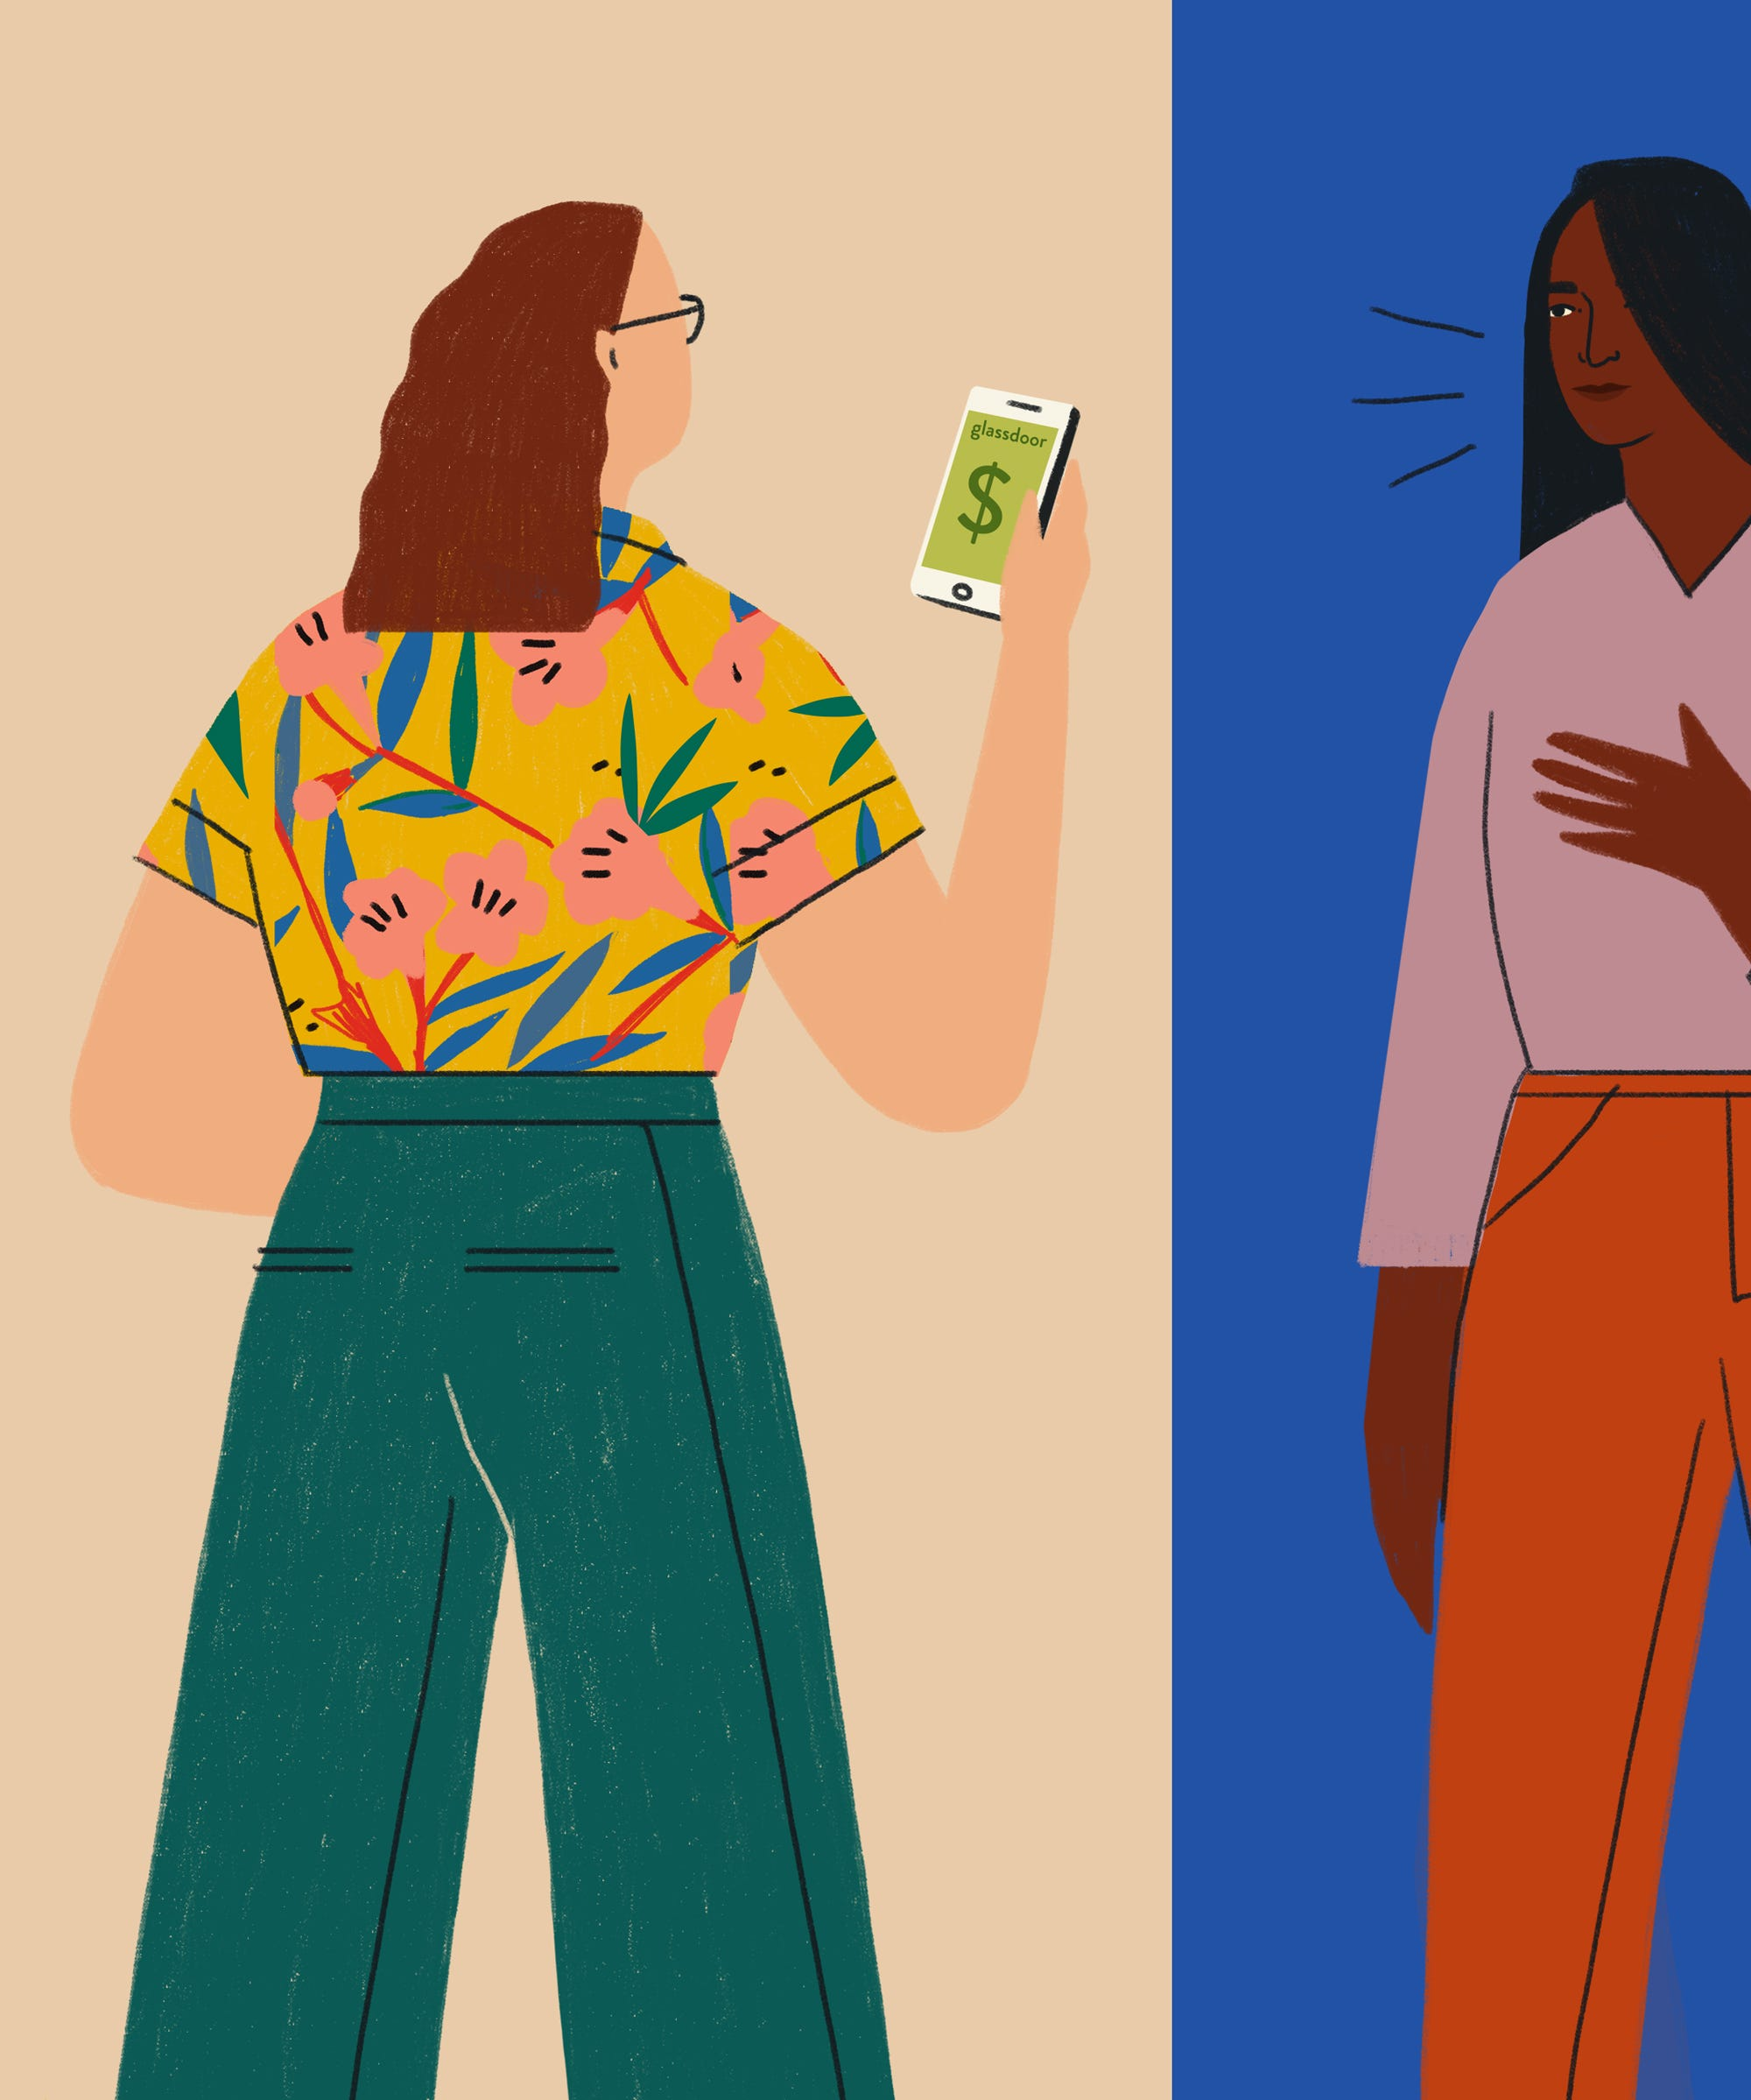 My Personal Shopping Client Got Me A Job — Now I Make $95K